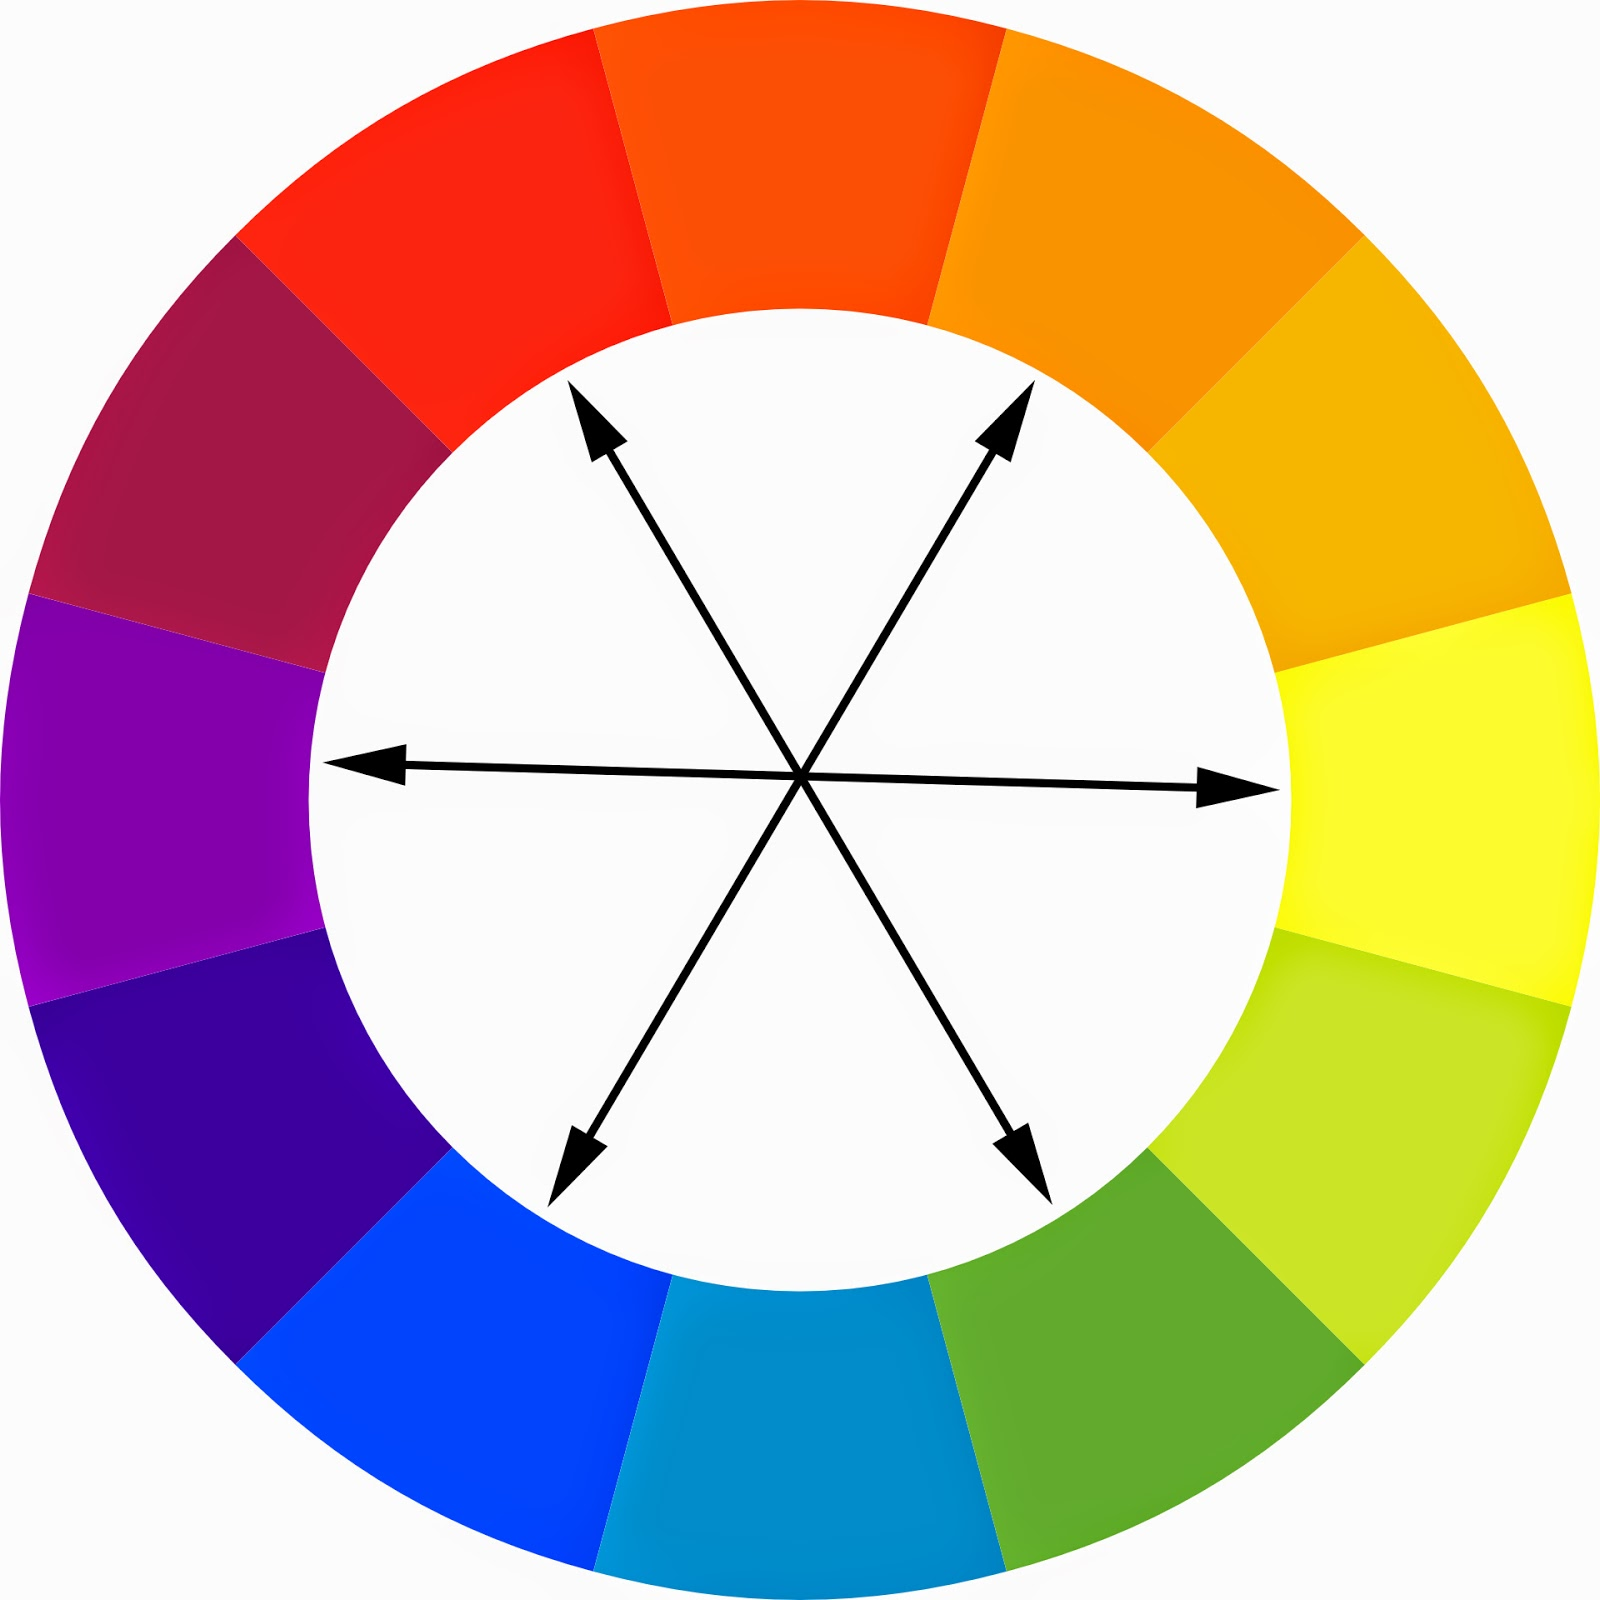 What Are The Best Colors For Websites And Branding To